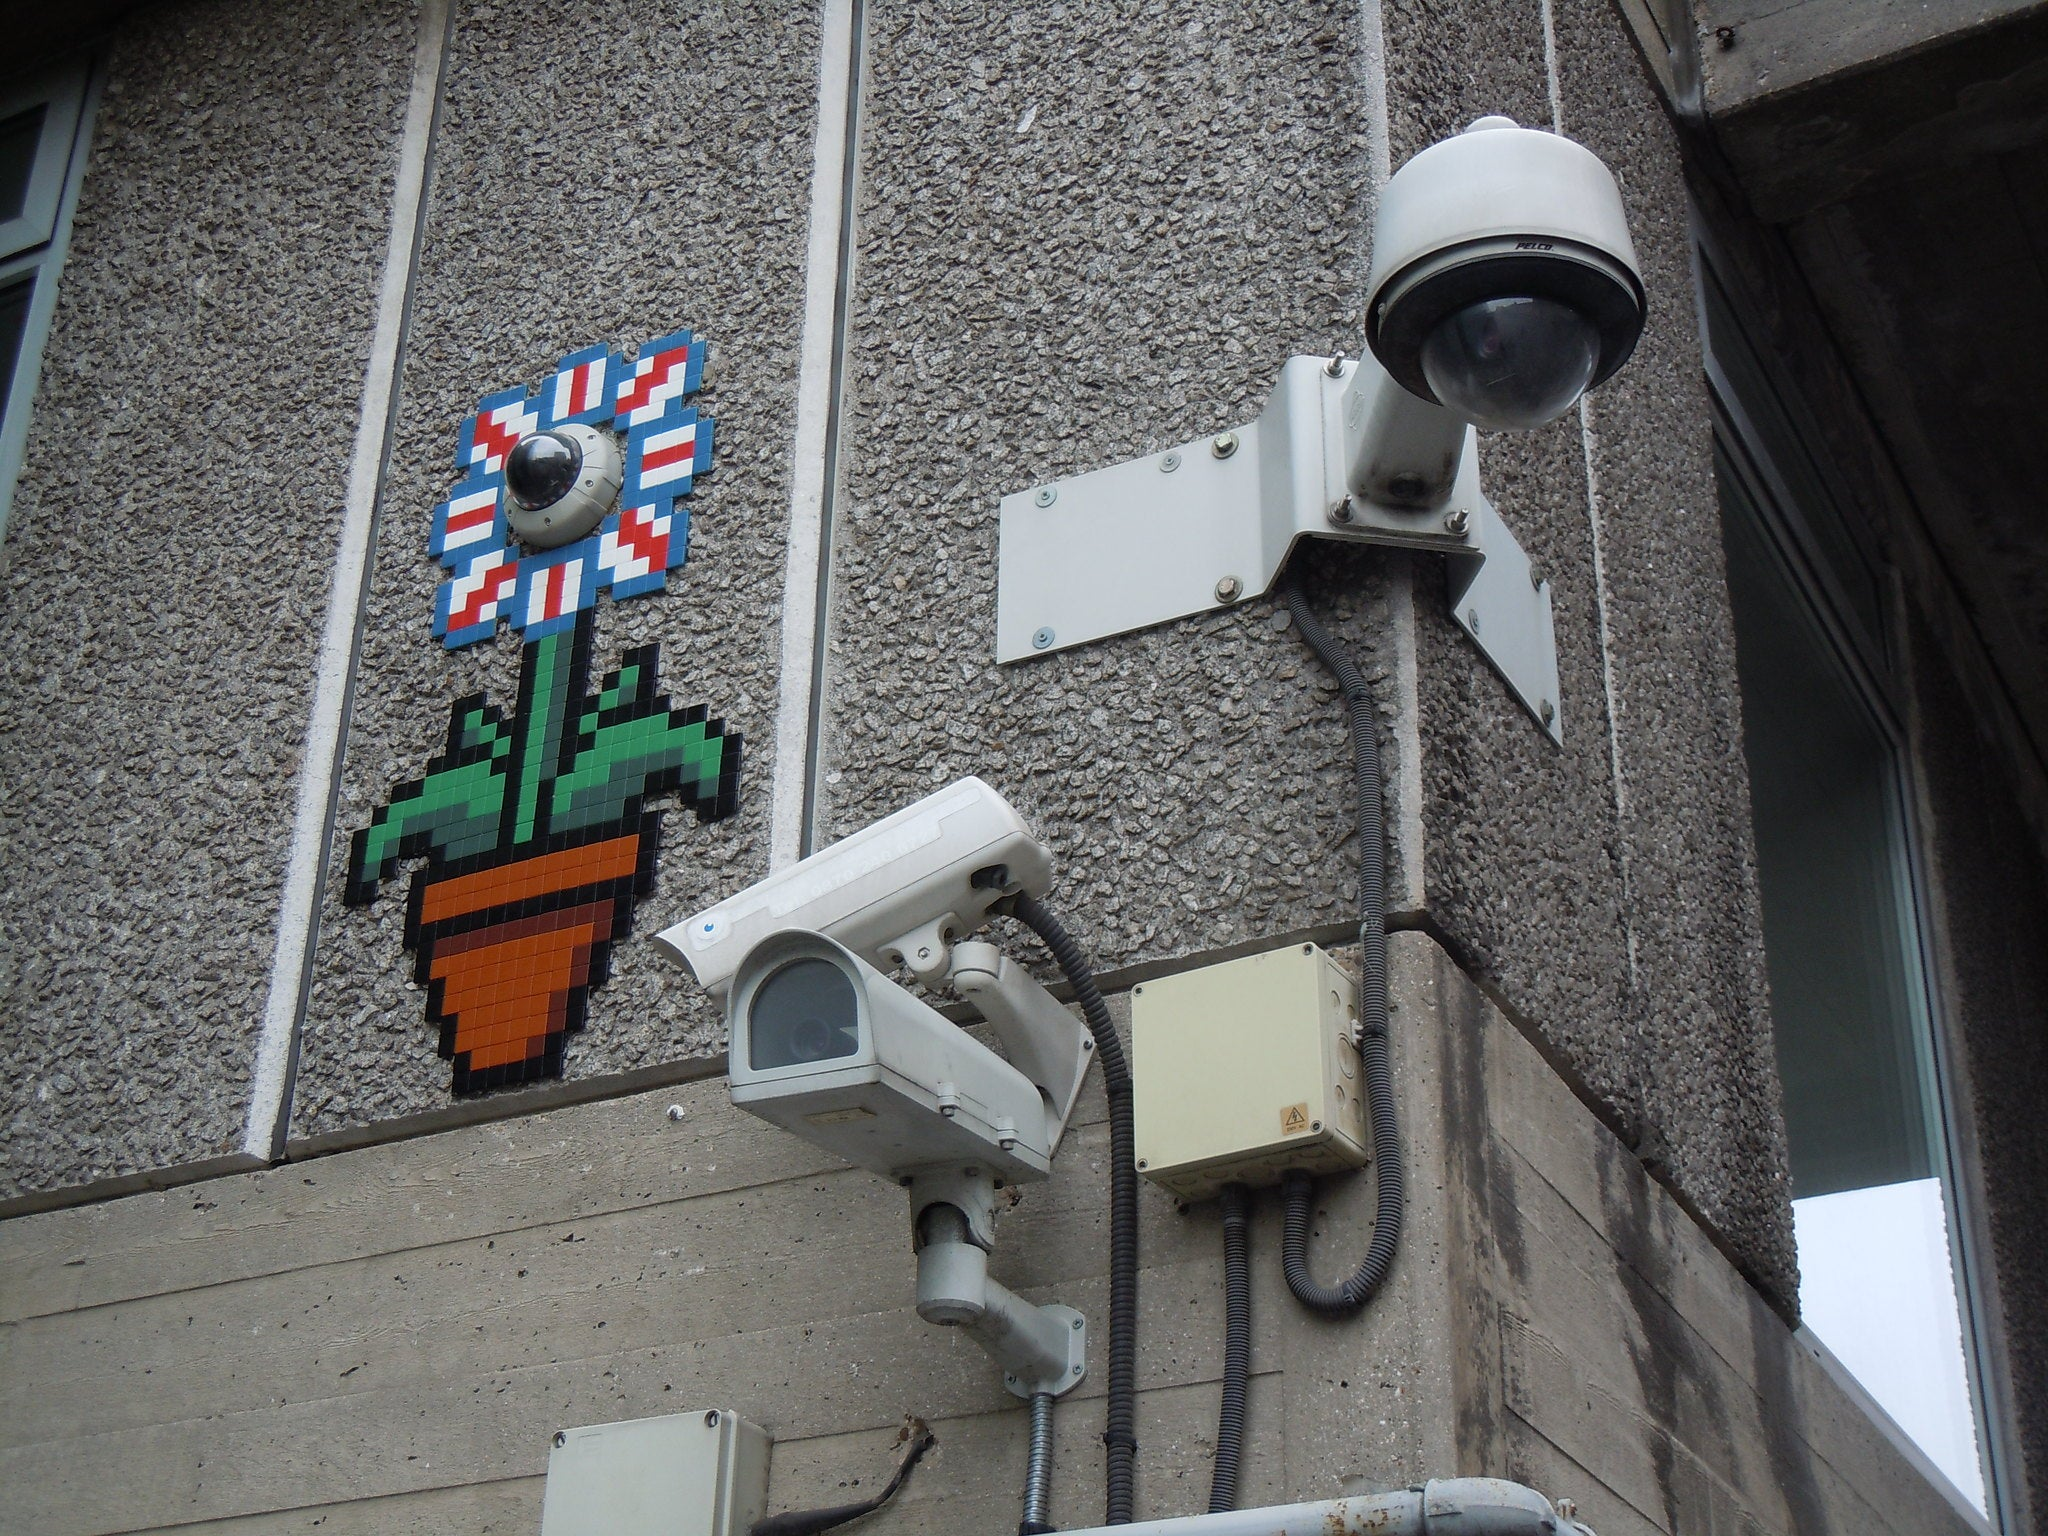 EU plans five-year ban on use of facial recognition tech in public spaces